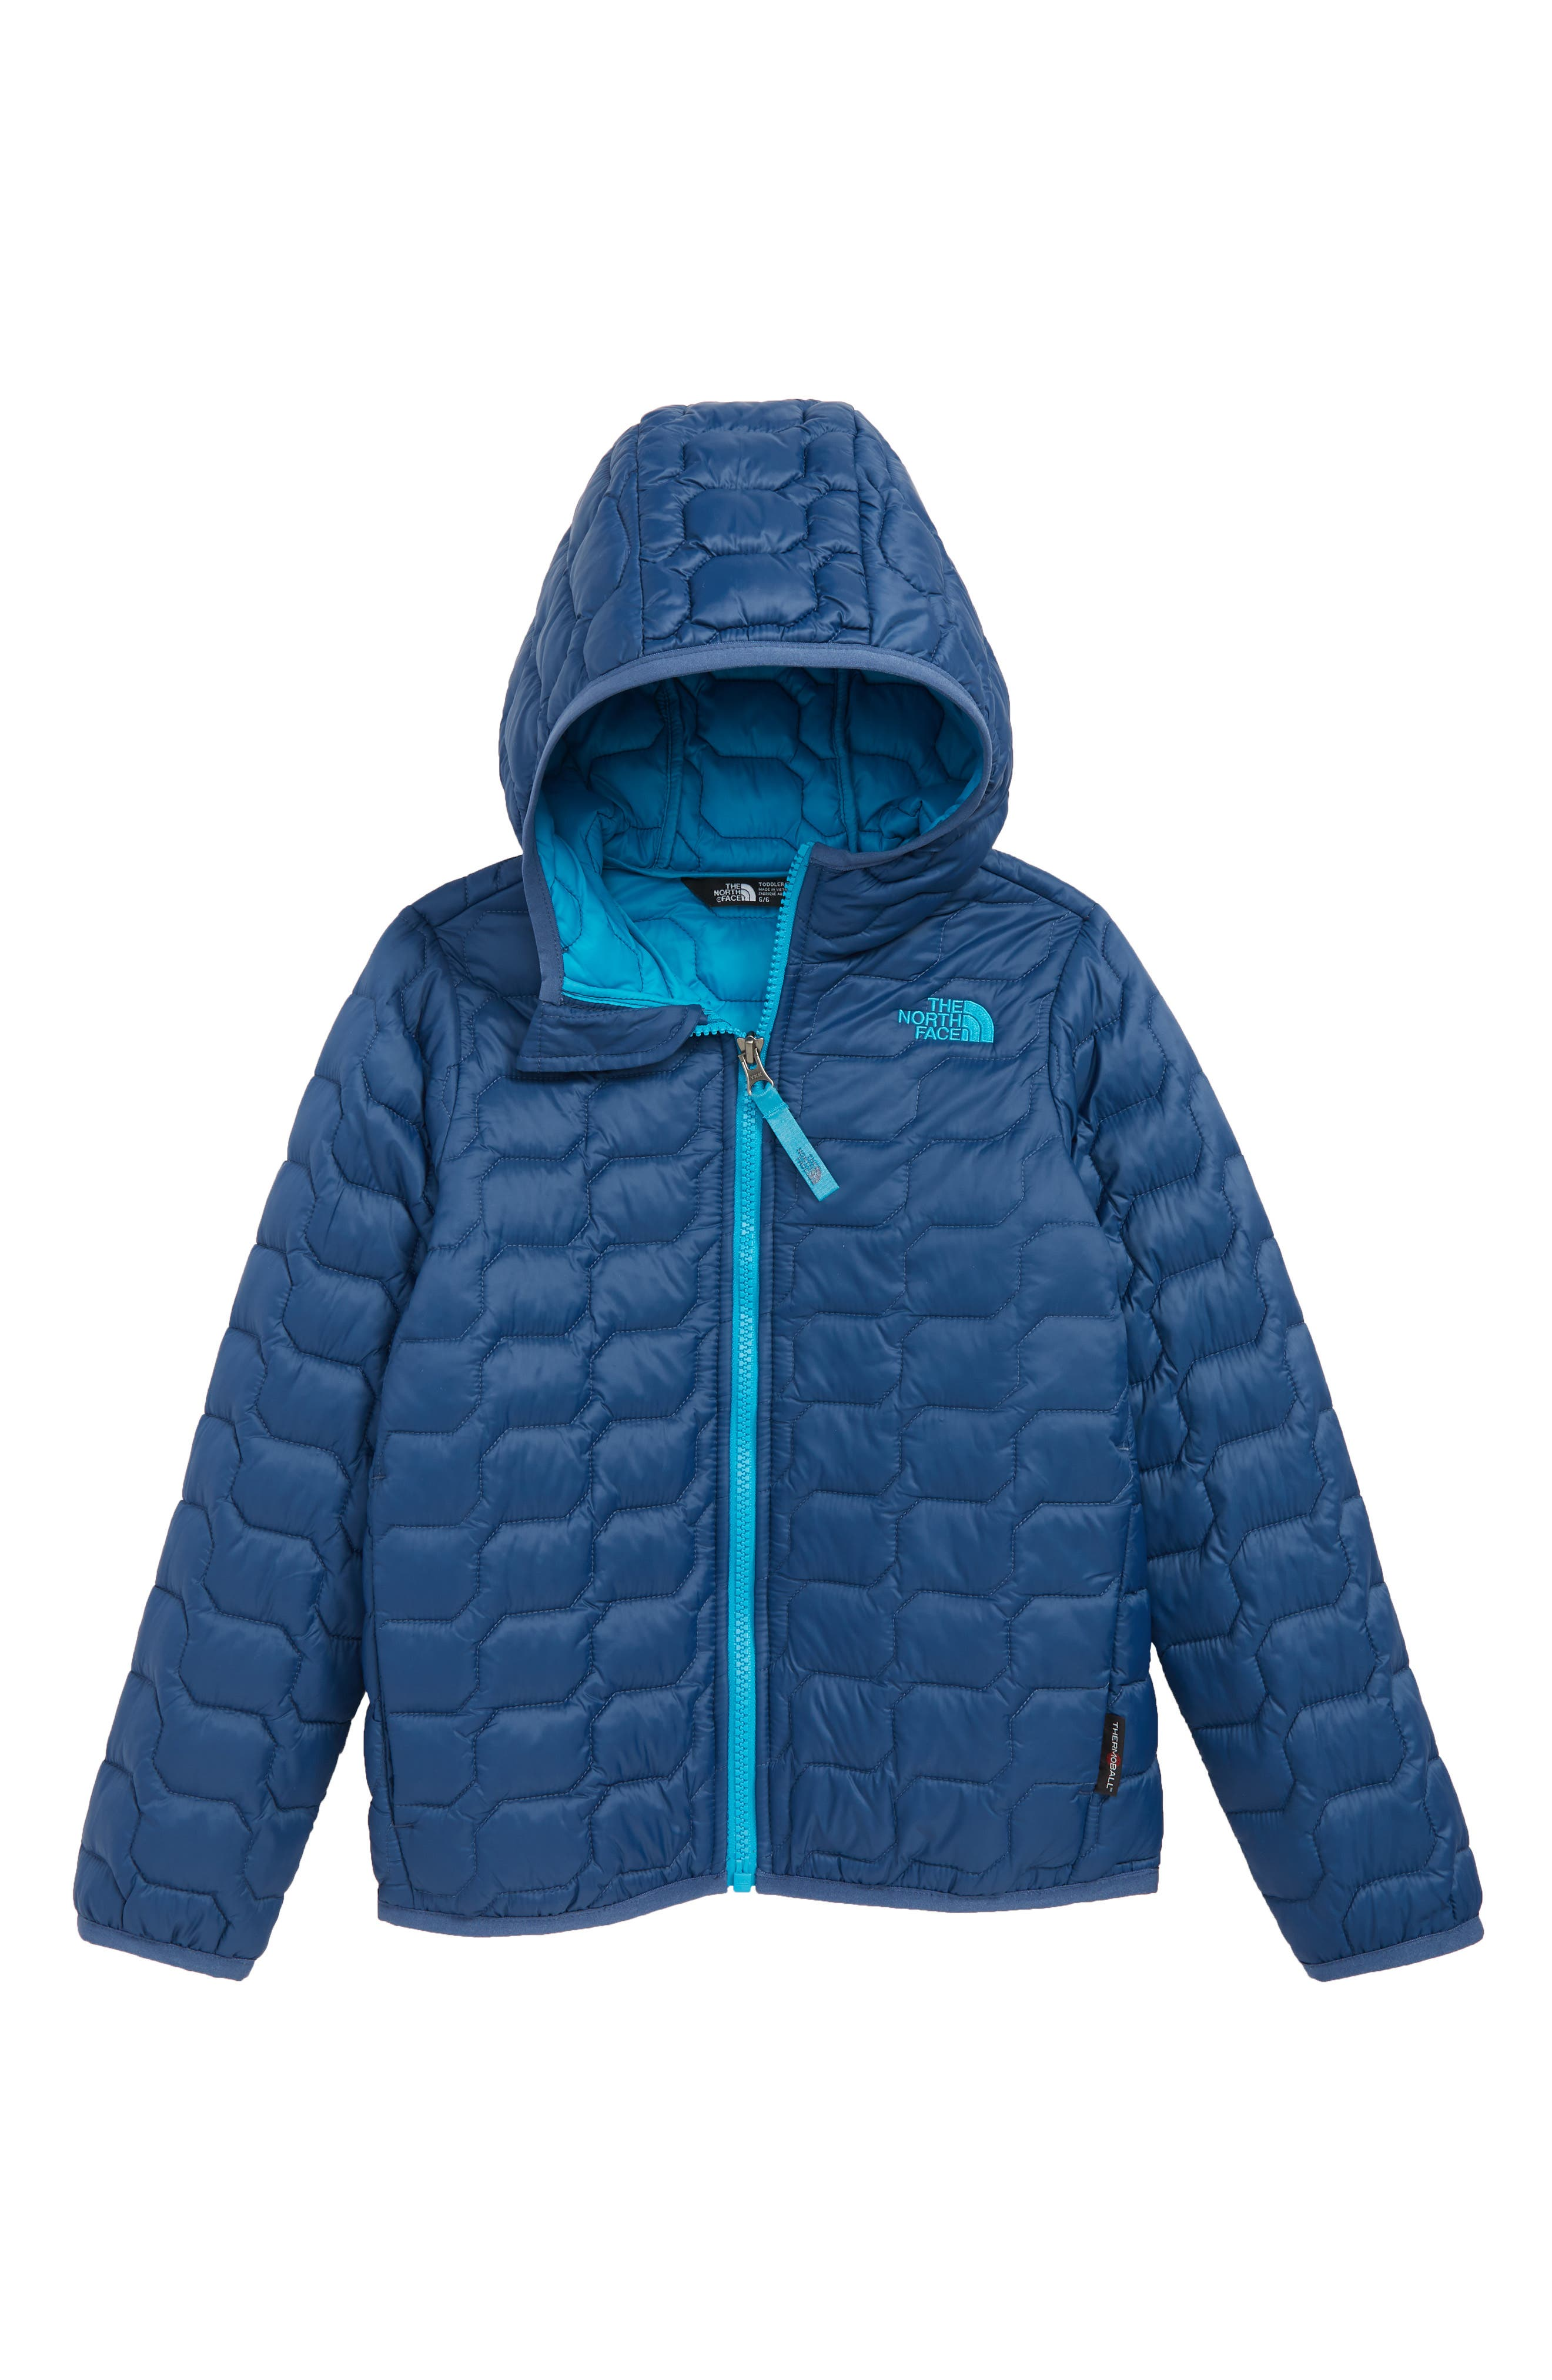 Boys The North Face Thermoball(TM) Hooded Coat Size 6  Blue